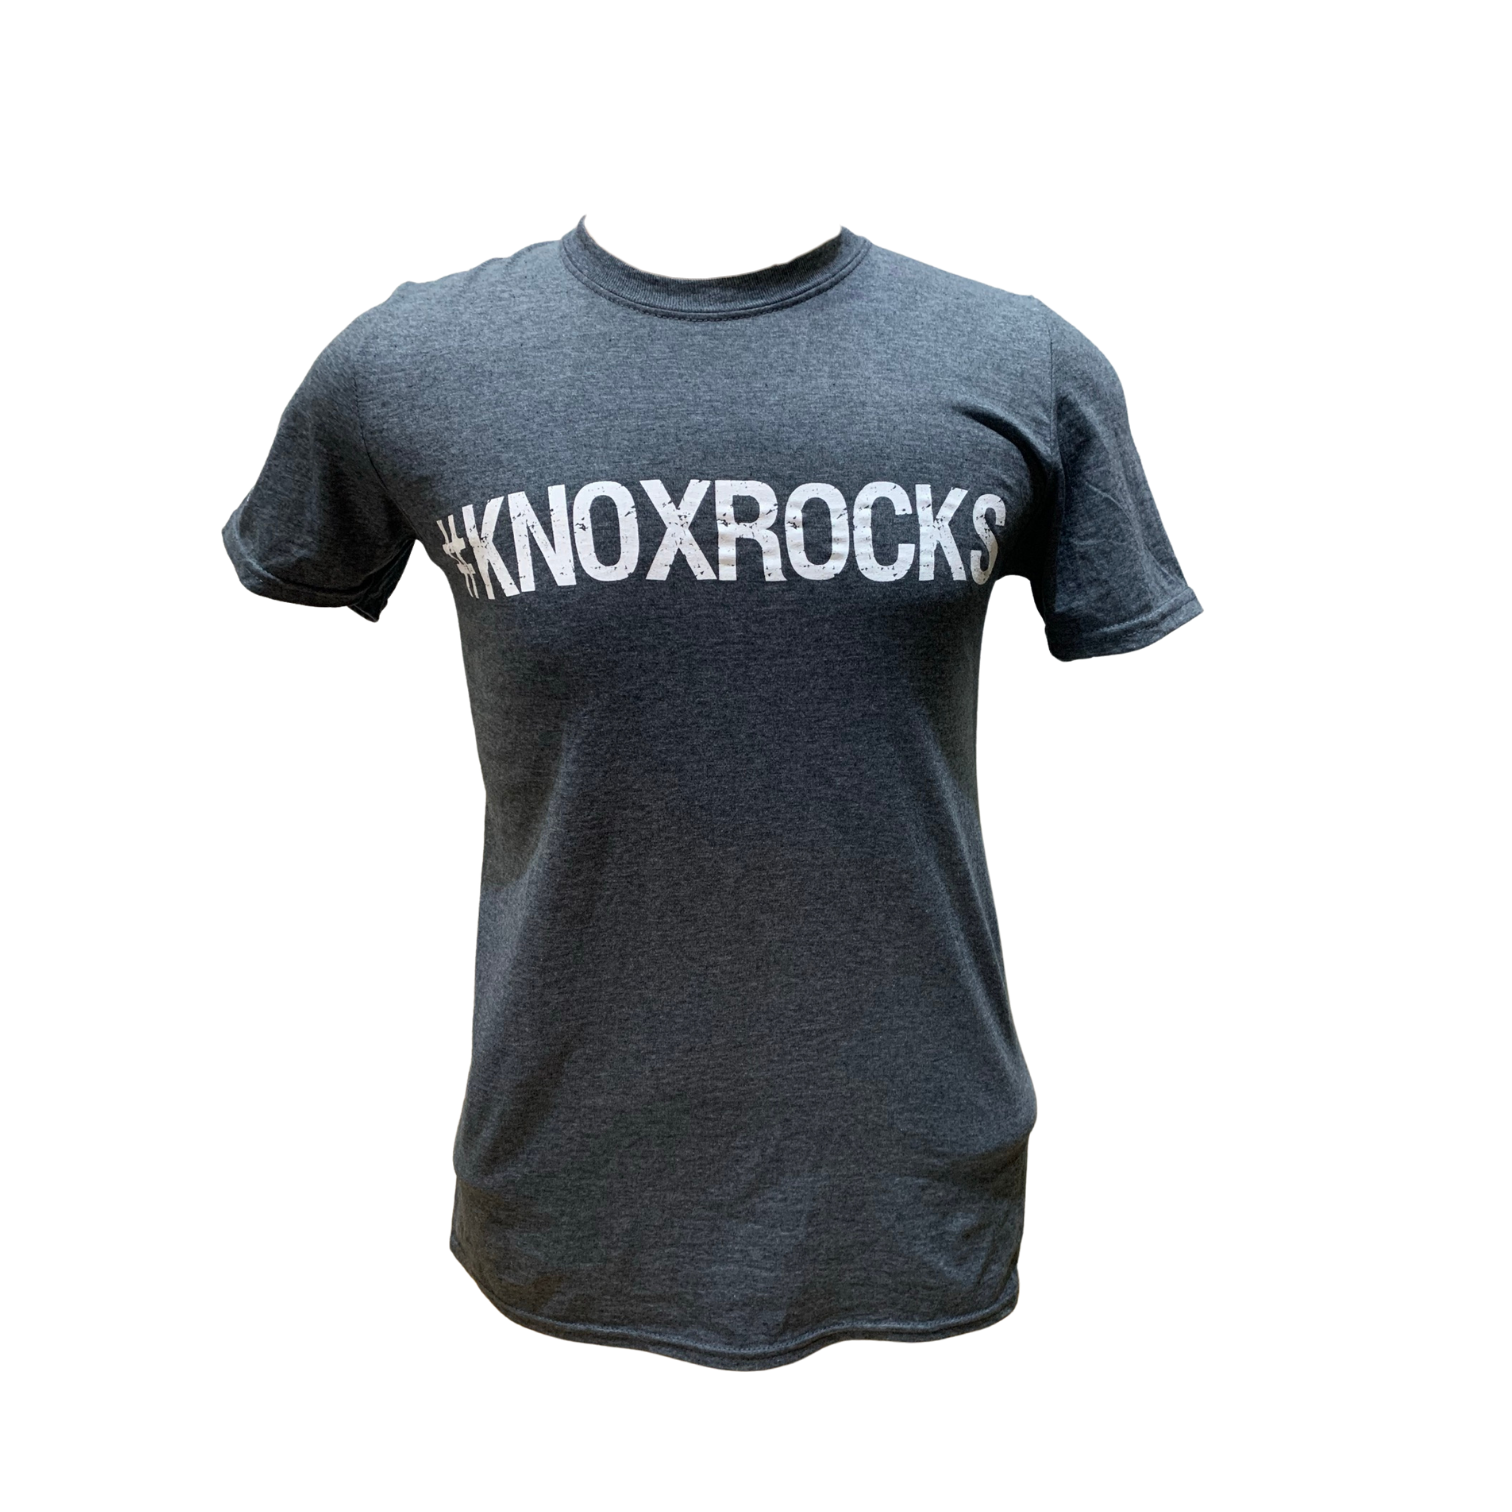 Grey #KNOXROCKS T-Shirt